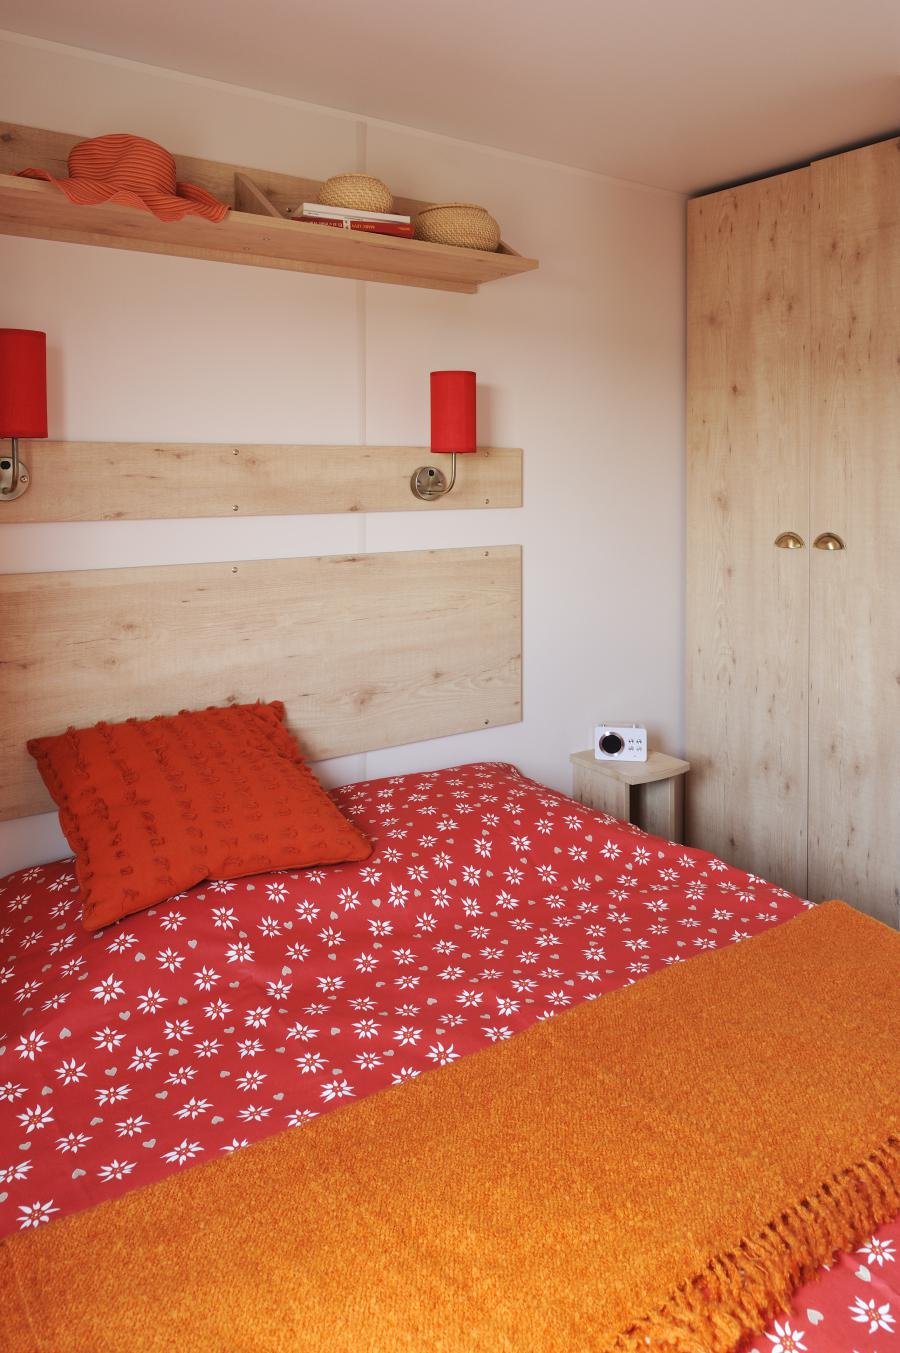 locations roulottes camping des p cheurs jura 39. Black Bedroom Furniture Sets. Home Design Ideas